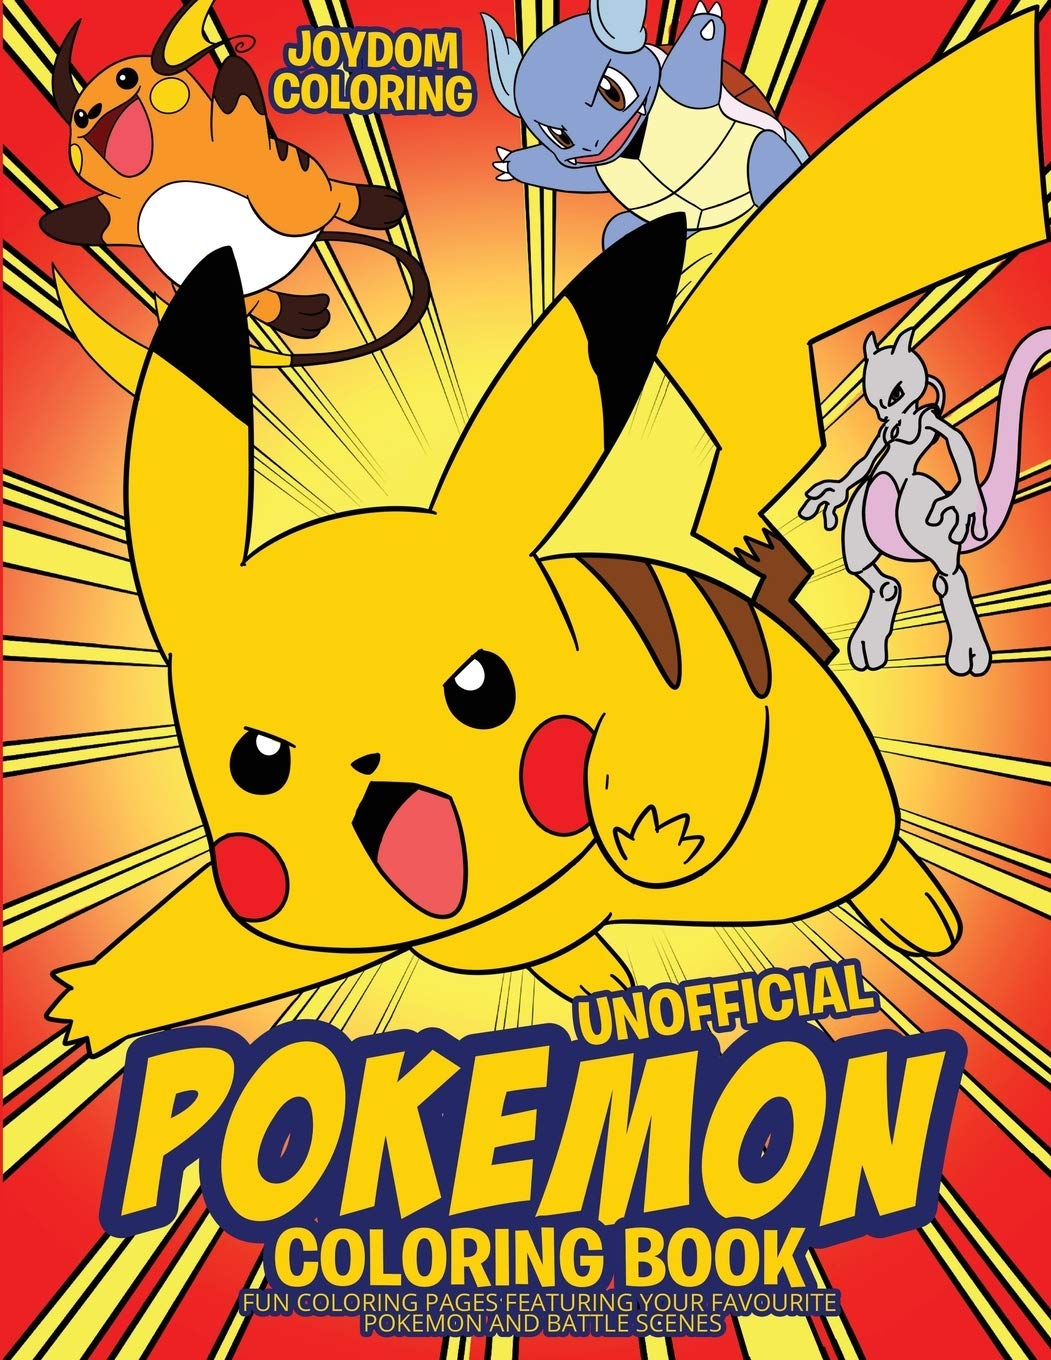 Unofficial Pokemon Coloring Book Fun Coloring Pages Featuring Your Favorite Pokemon And Battle Scenes 9781951355319 Amazon Com Books